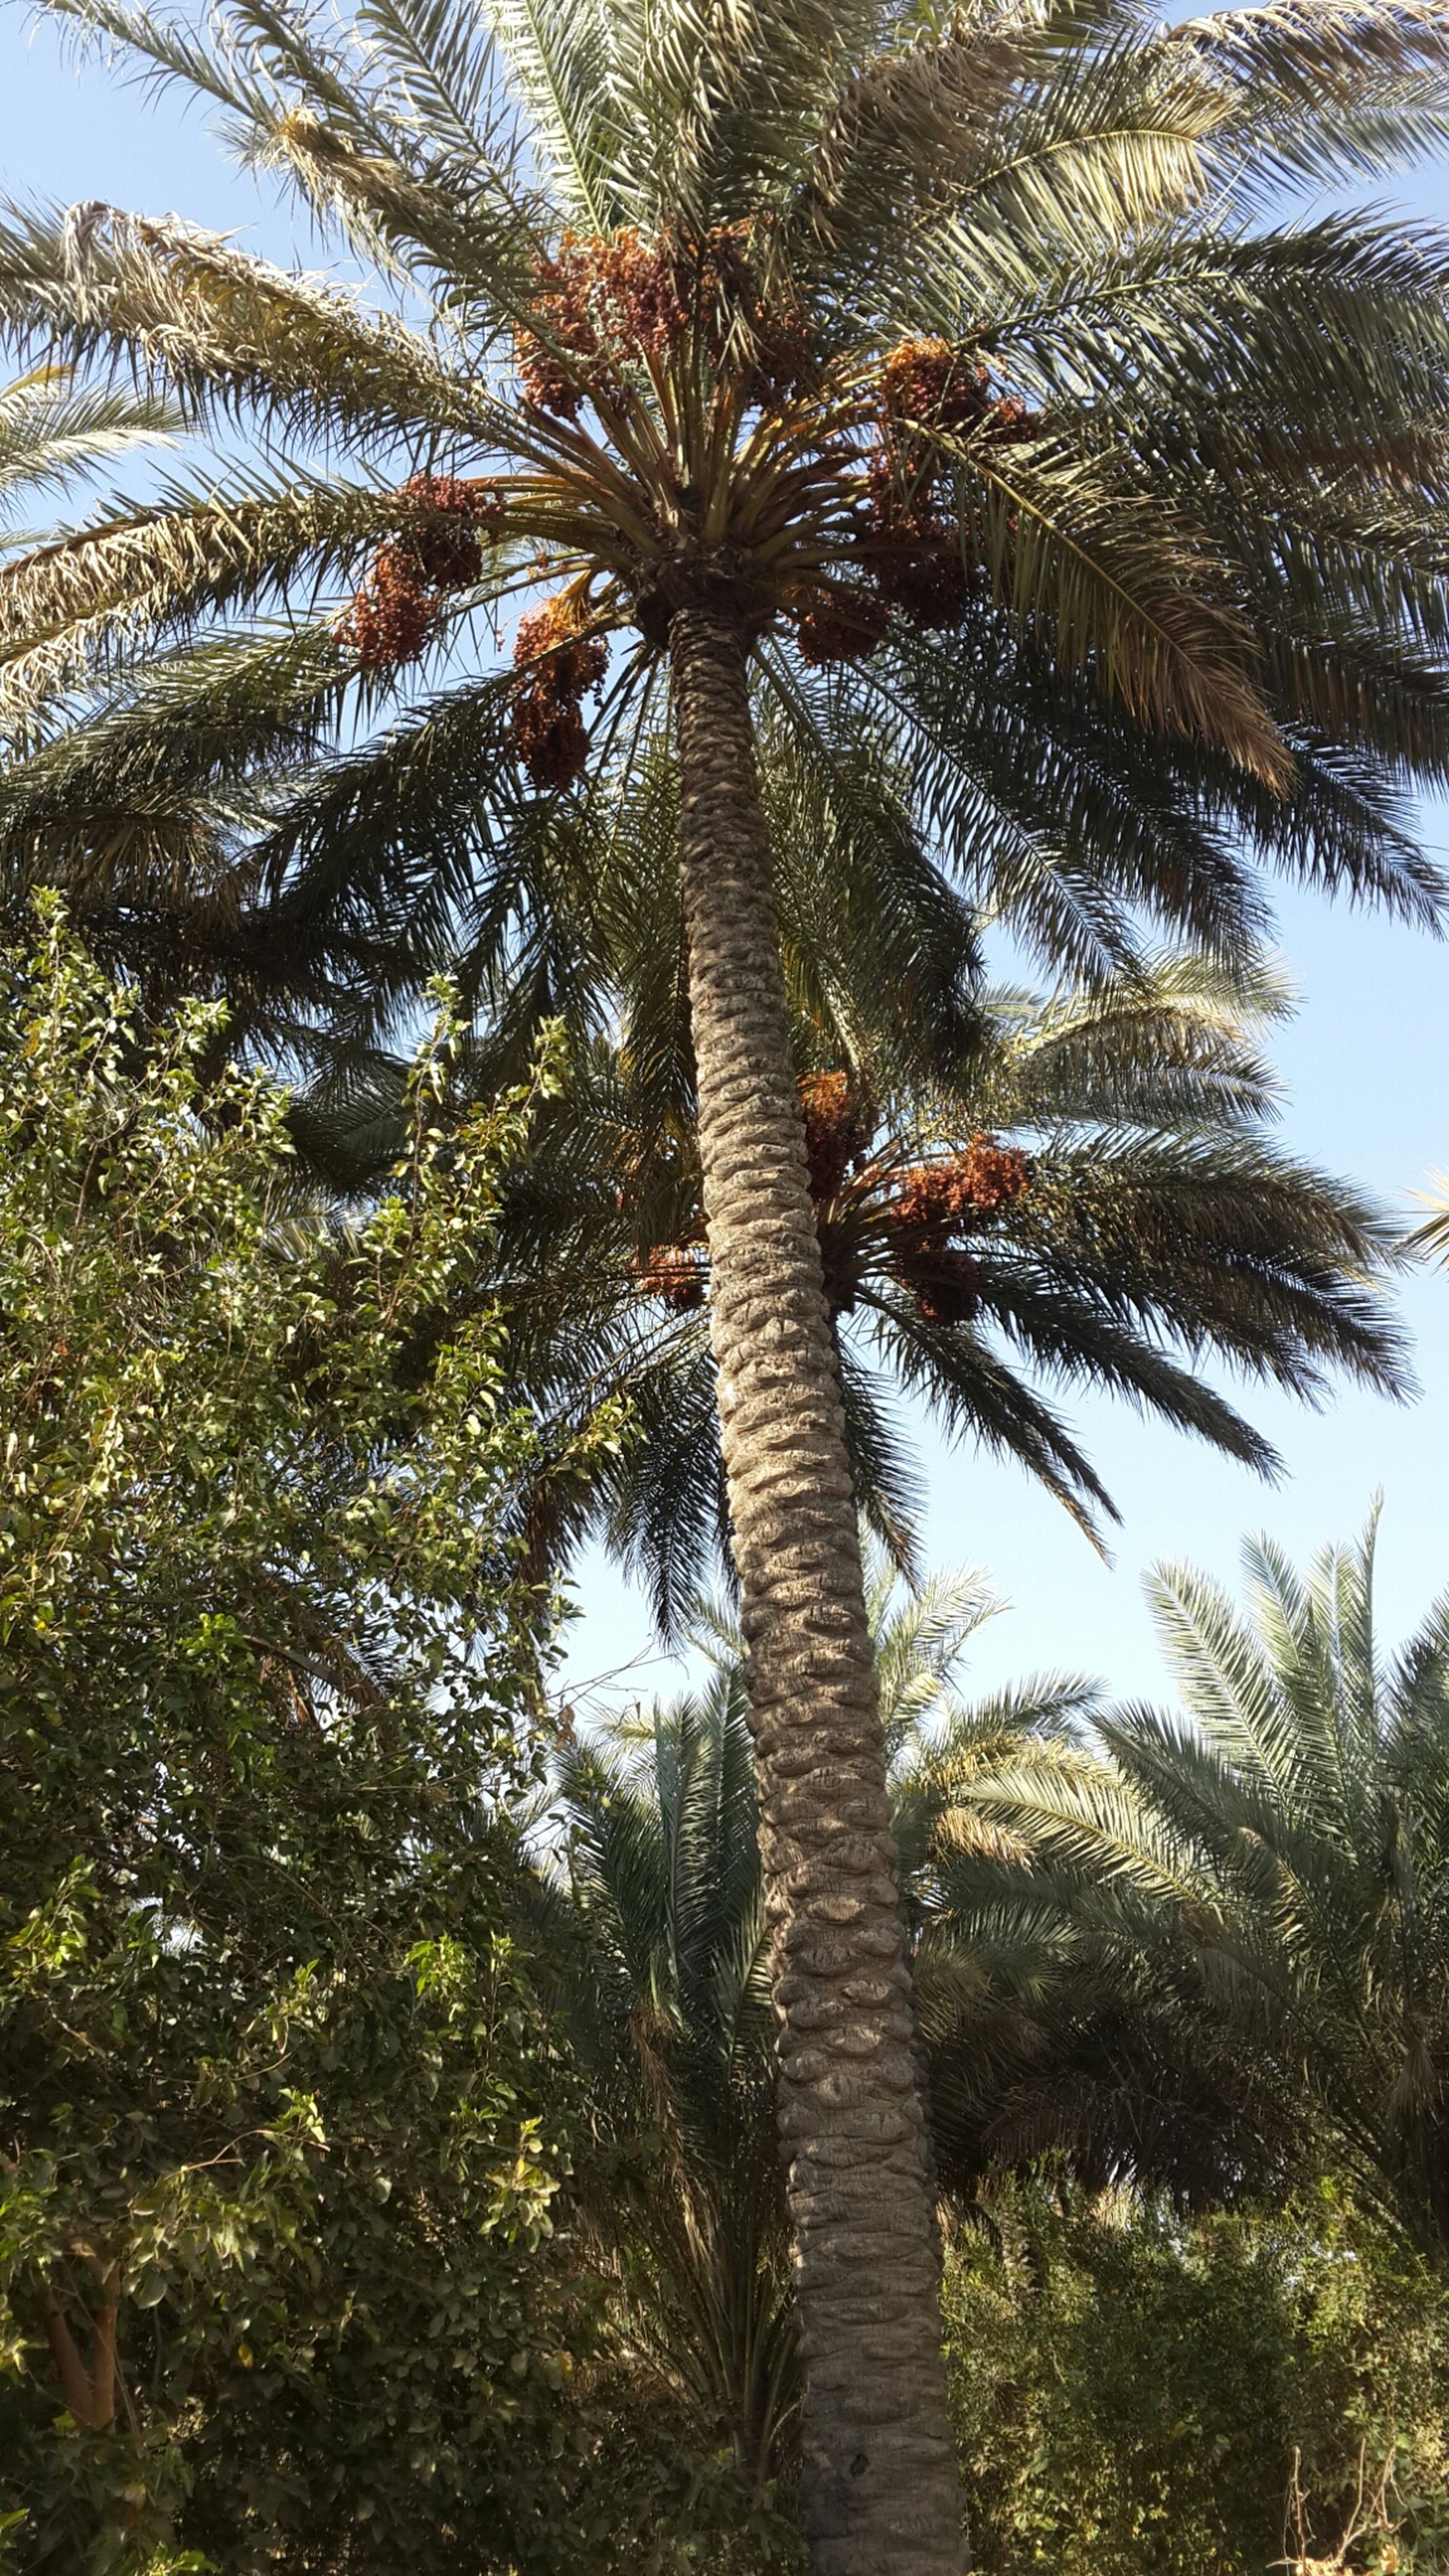 tree, palm tree, growth, low angle view, tree trunk, tranquility, nature, branch, sky, tranquil scene, beauty in nature, tall - high, clear sky, green color, scenics, day, outdoors, growing, no people, palm leaf